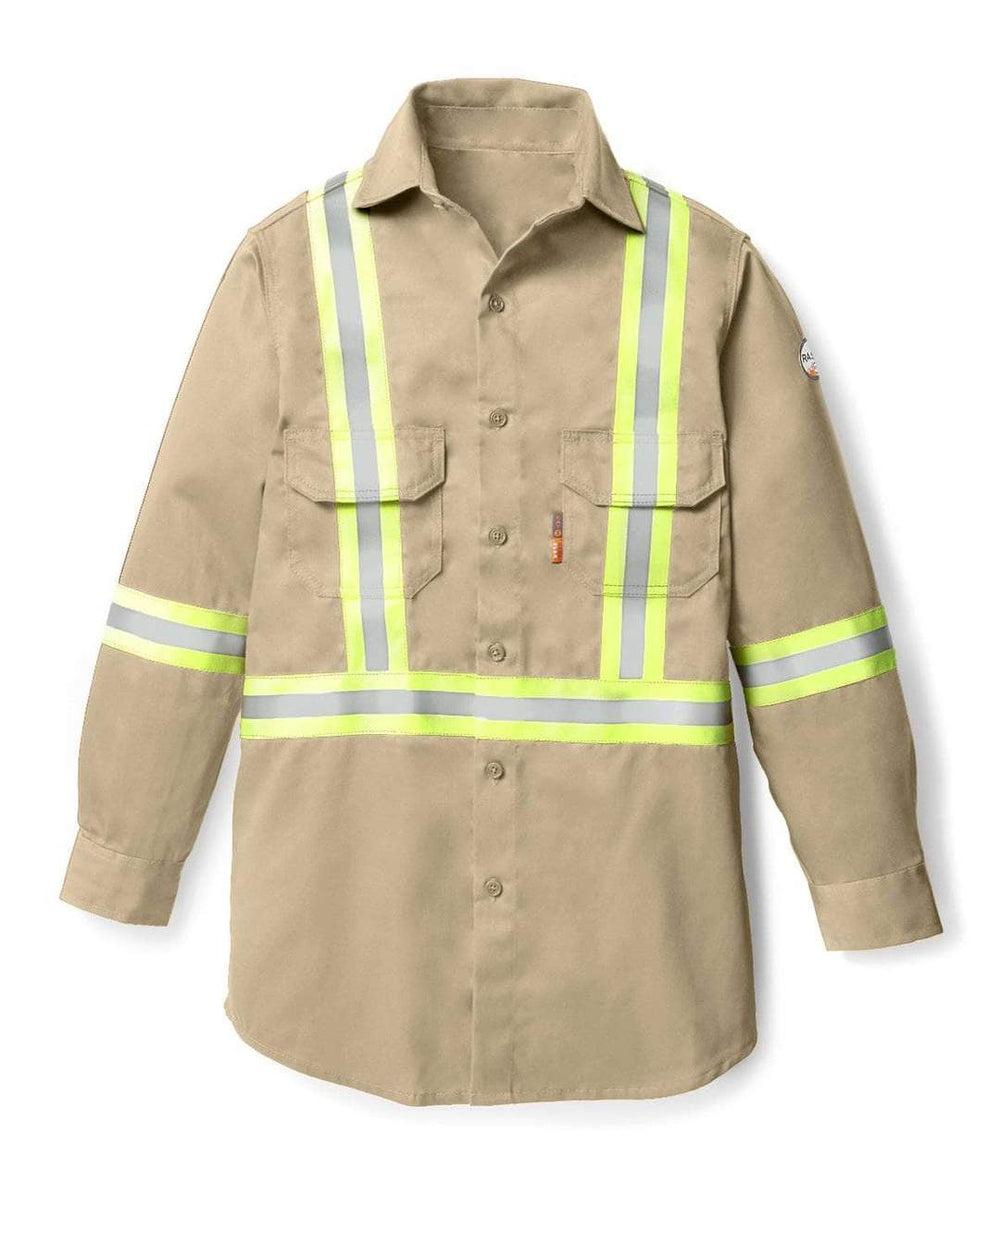 Rasco FR Men's Light Weight Khaki Work Shirt W/Reflective Striping FR1403KH